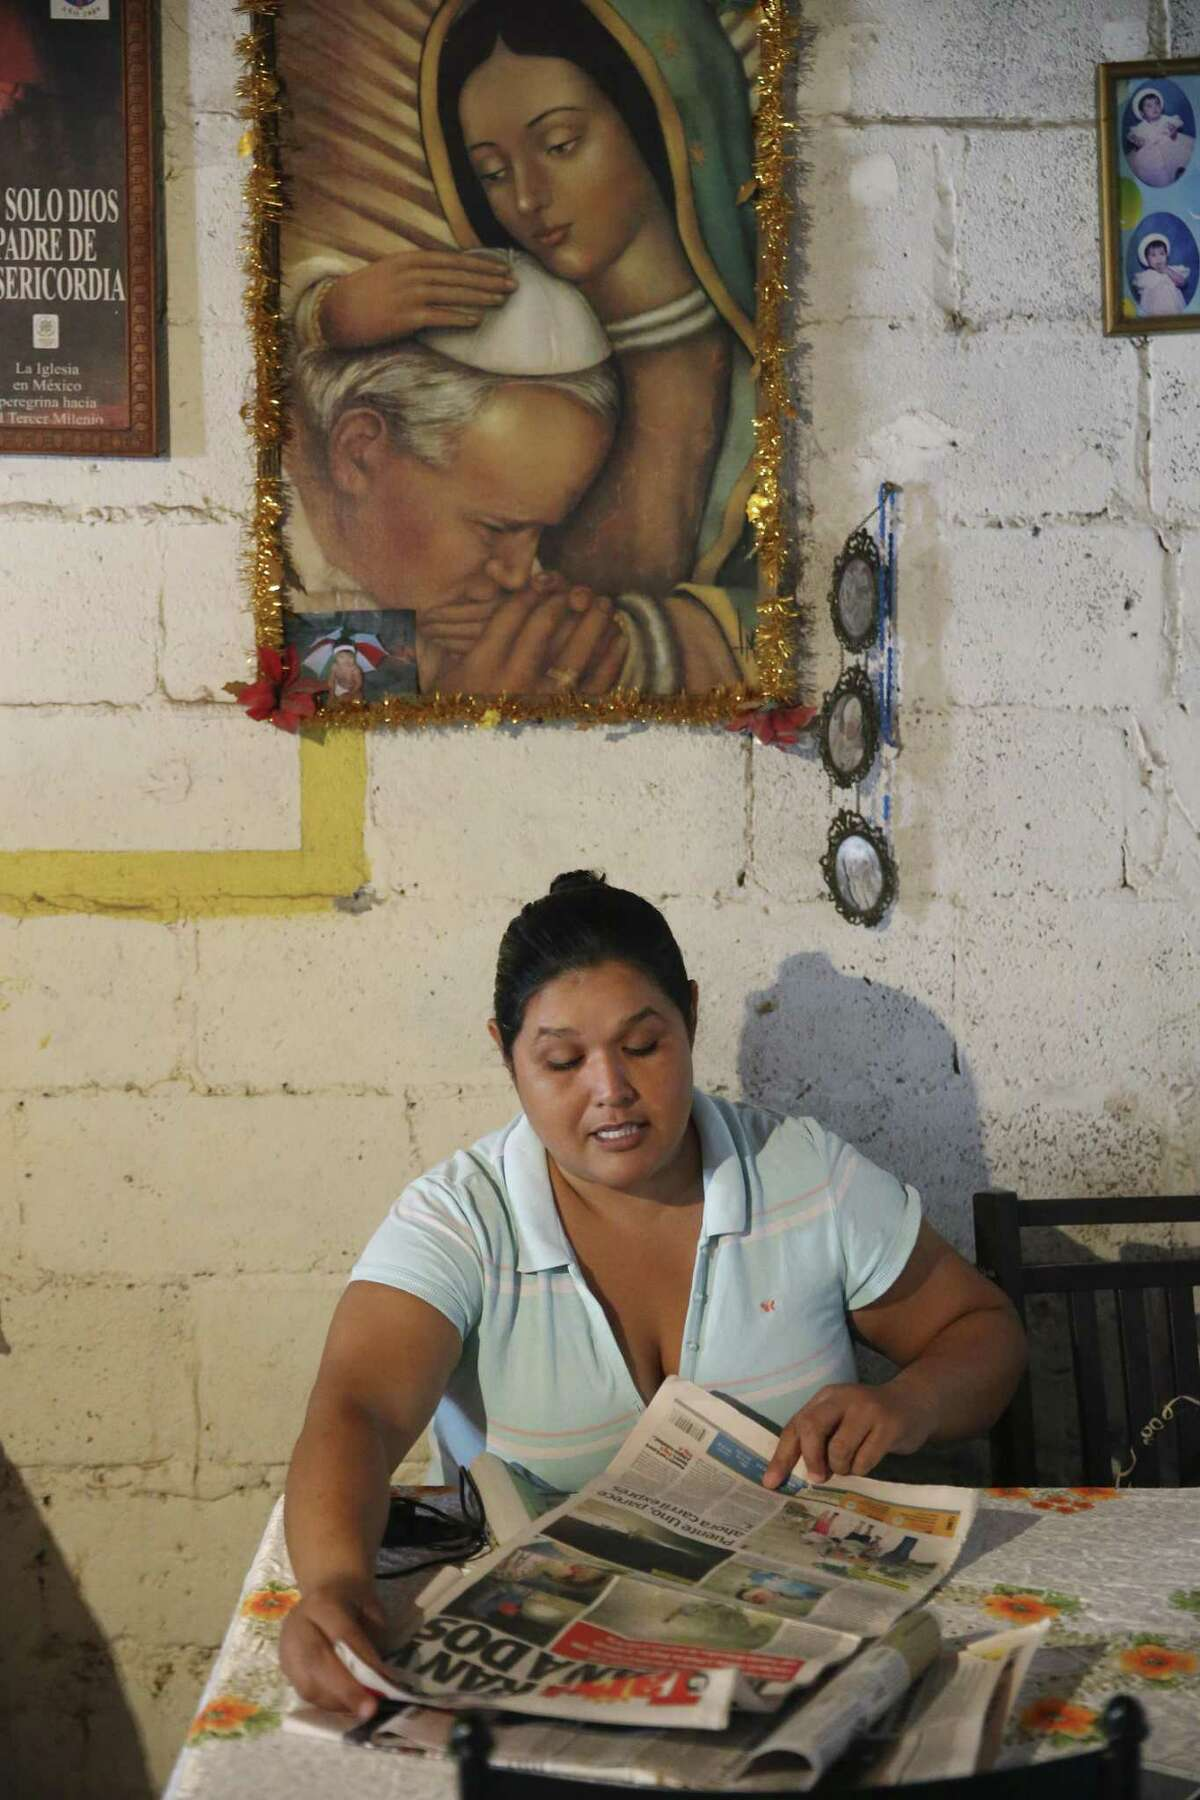 During an interview at her house in Nuevo Laredo, Mexico on Monday, Sept. 24, 2018, Maria de los Dolores Romero Medina, 36, shows newspaper articles on her son death. Her son was detained by Mexican marines on April 23rd at a convenience store according to witnesses. Two other people went missing at the same store 10 days earlier. The teen?•s body along with a woman?•s body were found a day later at a clandestine grave.